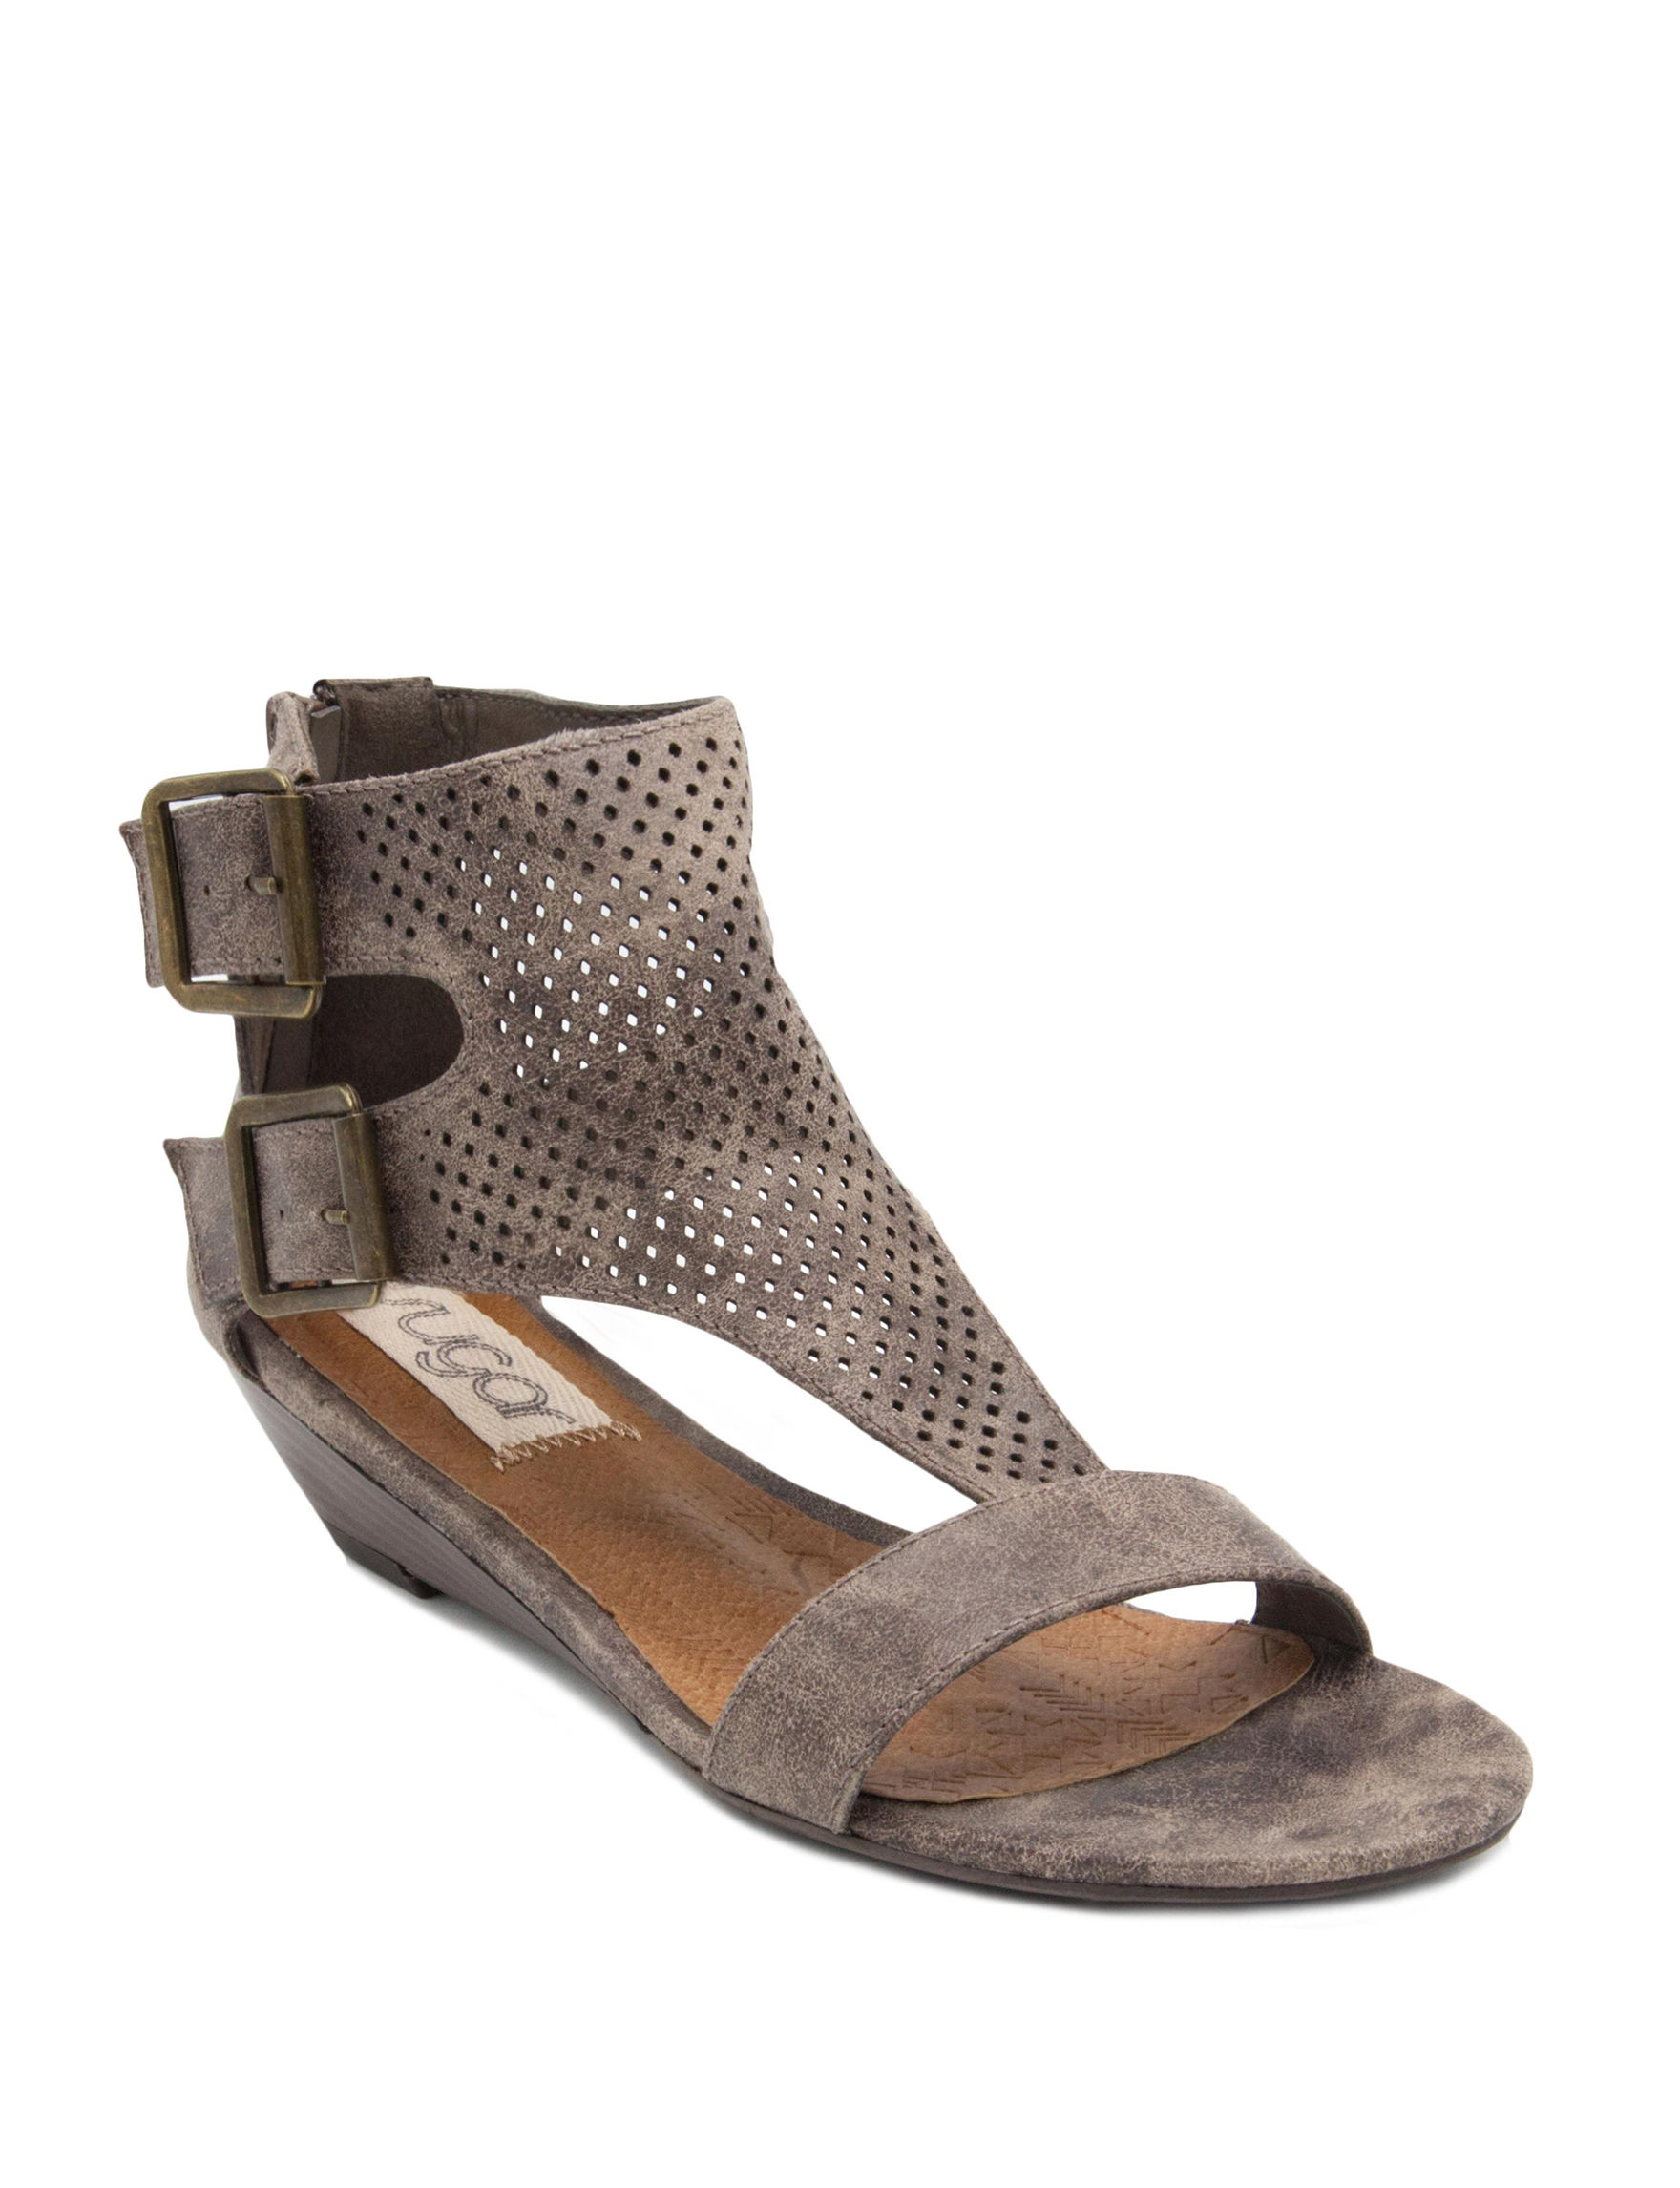 Sugar Taupe Wedge Sandals